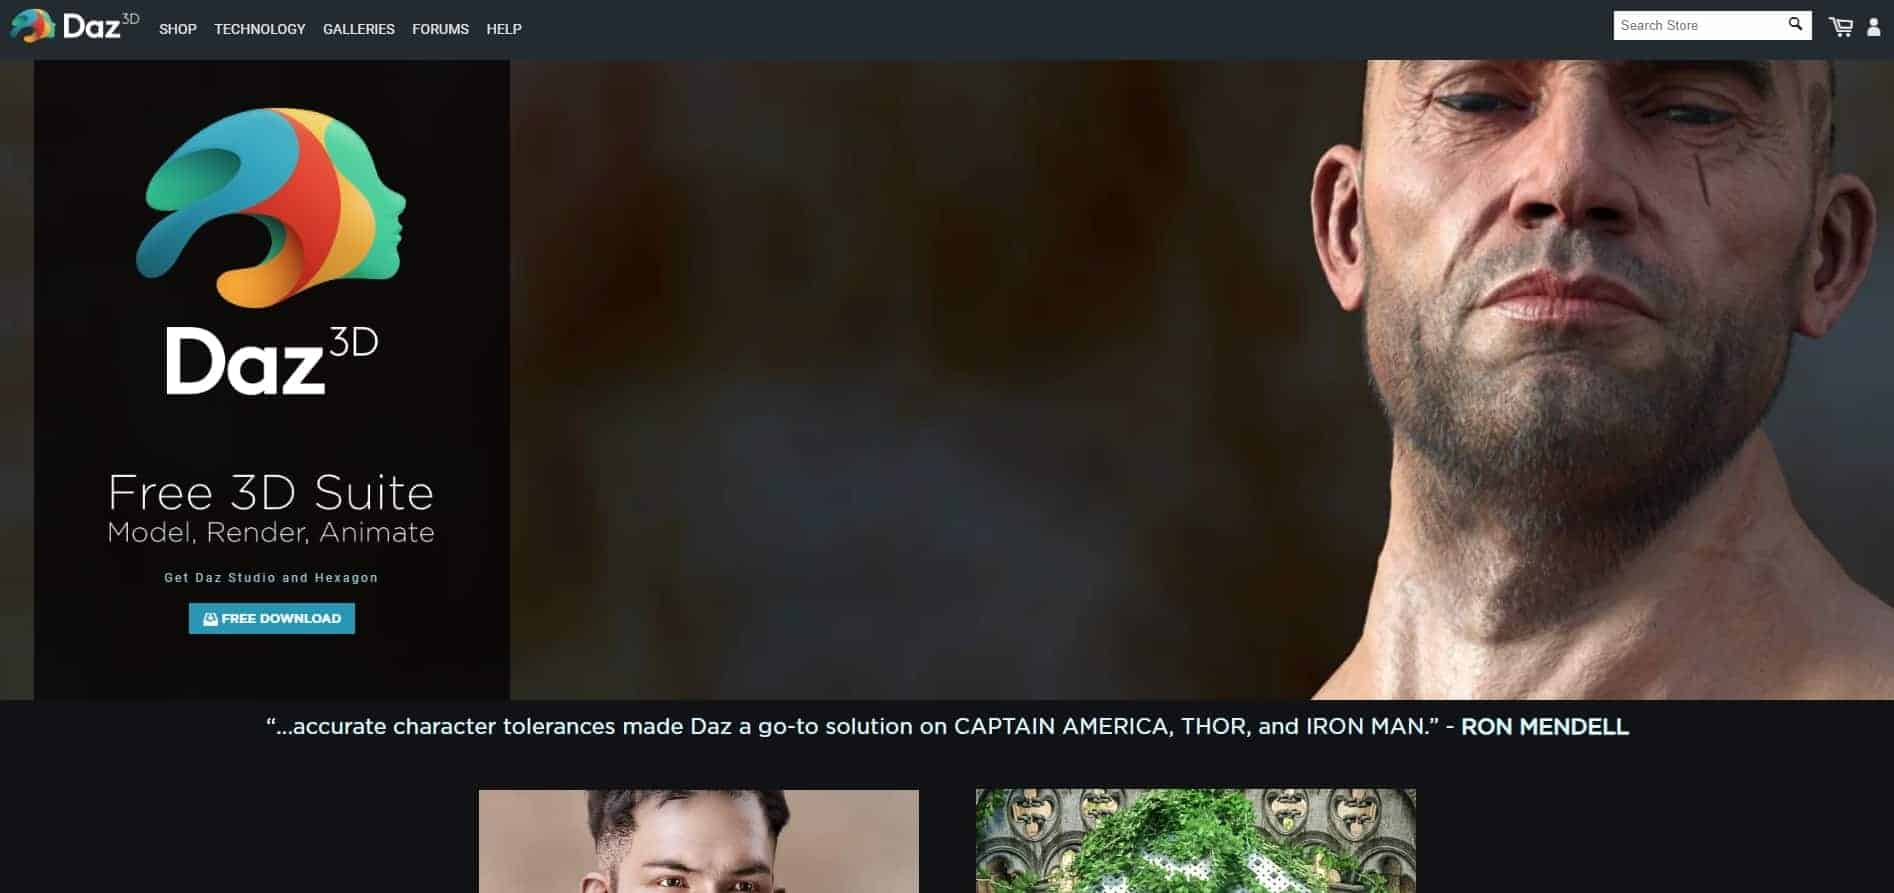 Daz 3D Software and website overview and review